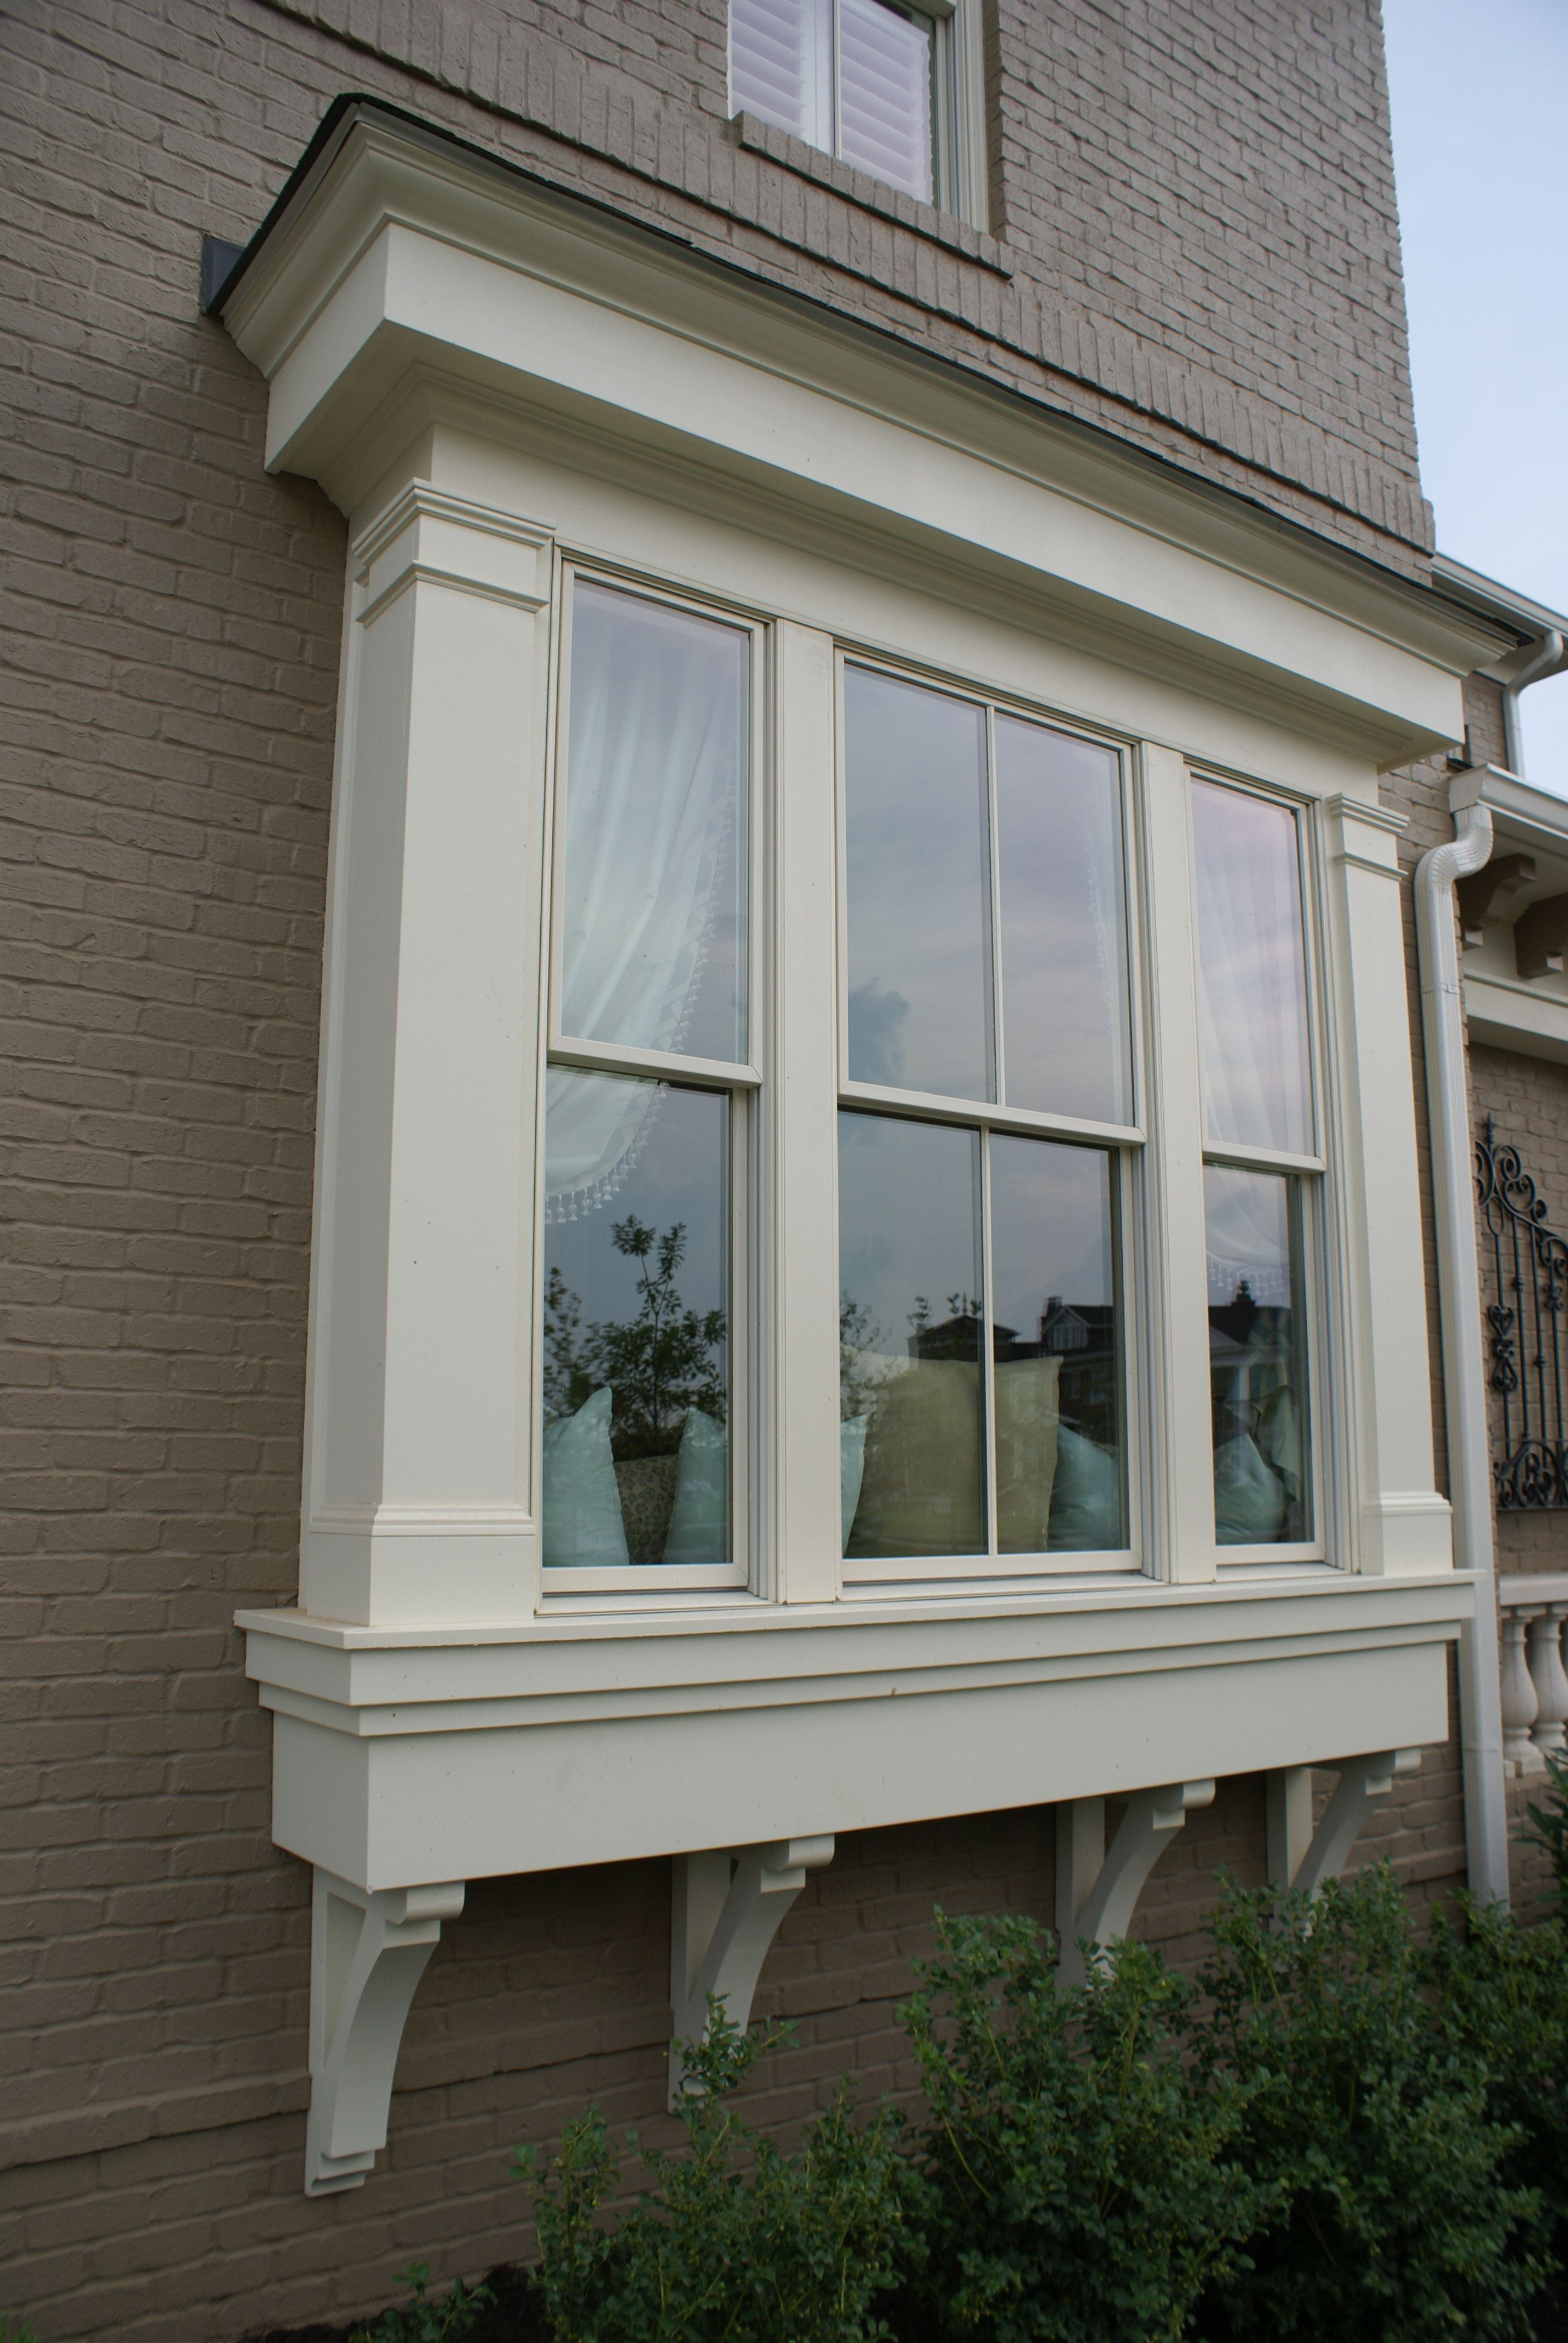 Business Design A House And Window: Window Trim Exterior, Bay Window Exterior, Windows Exterior